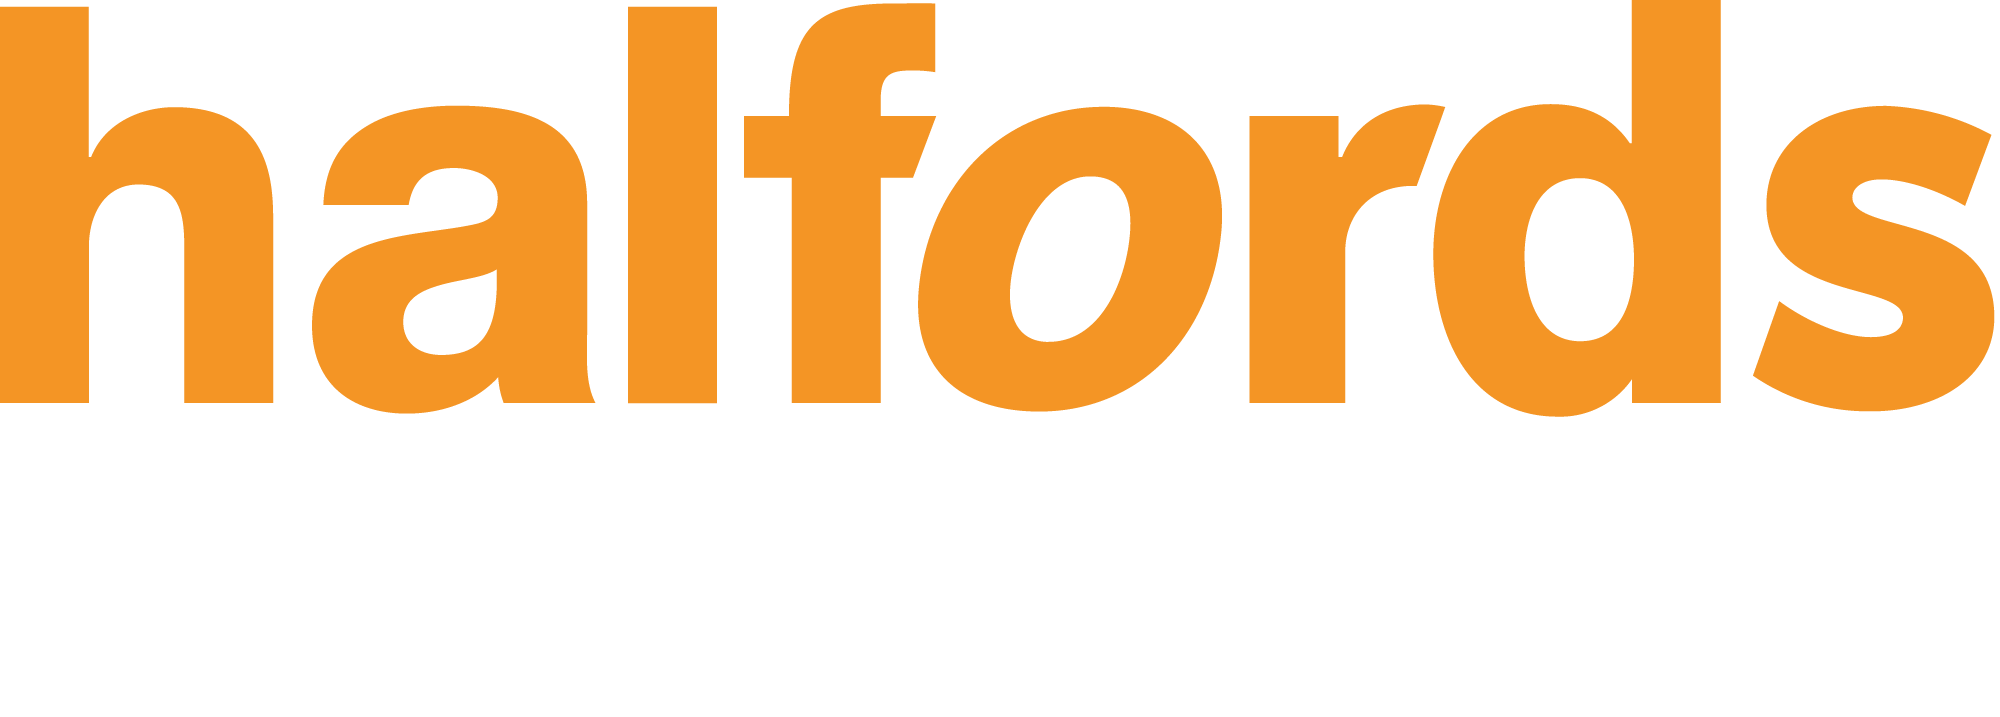 For the bigger jobs, visit Halfords Autocentres.